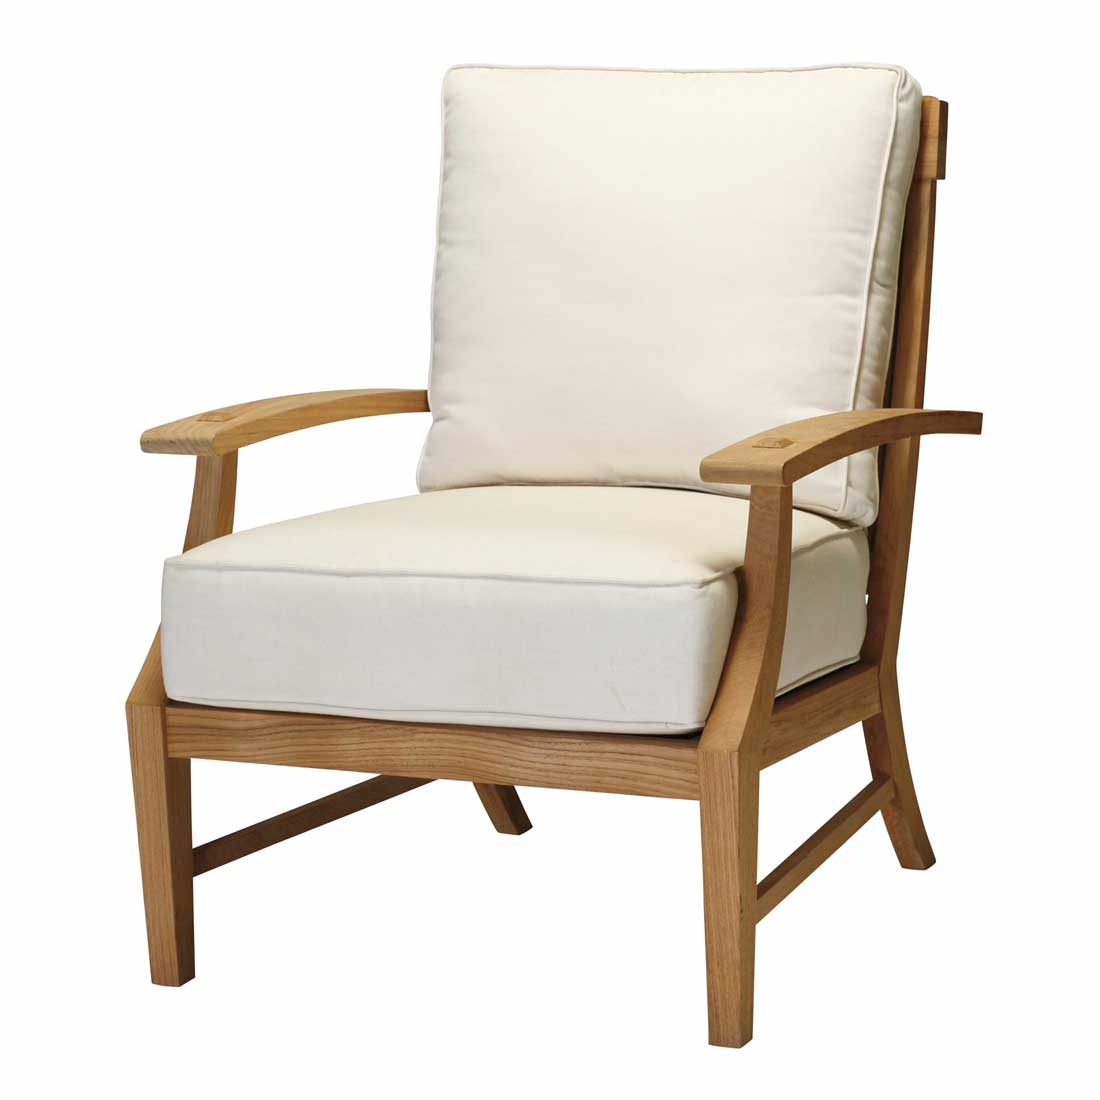 teak lounge chair cushions for dining chairs croque patio croquet